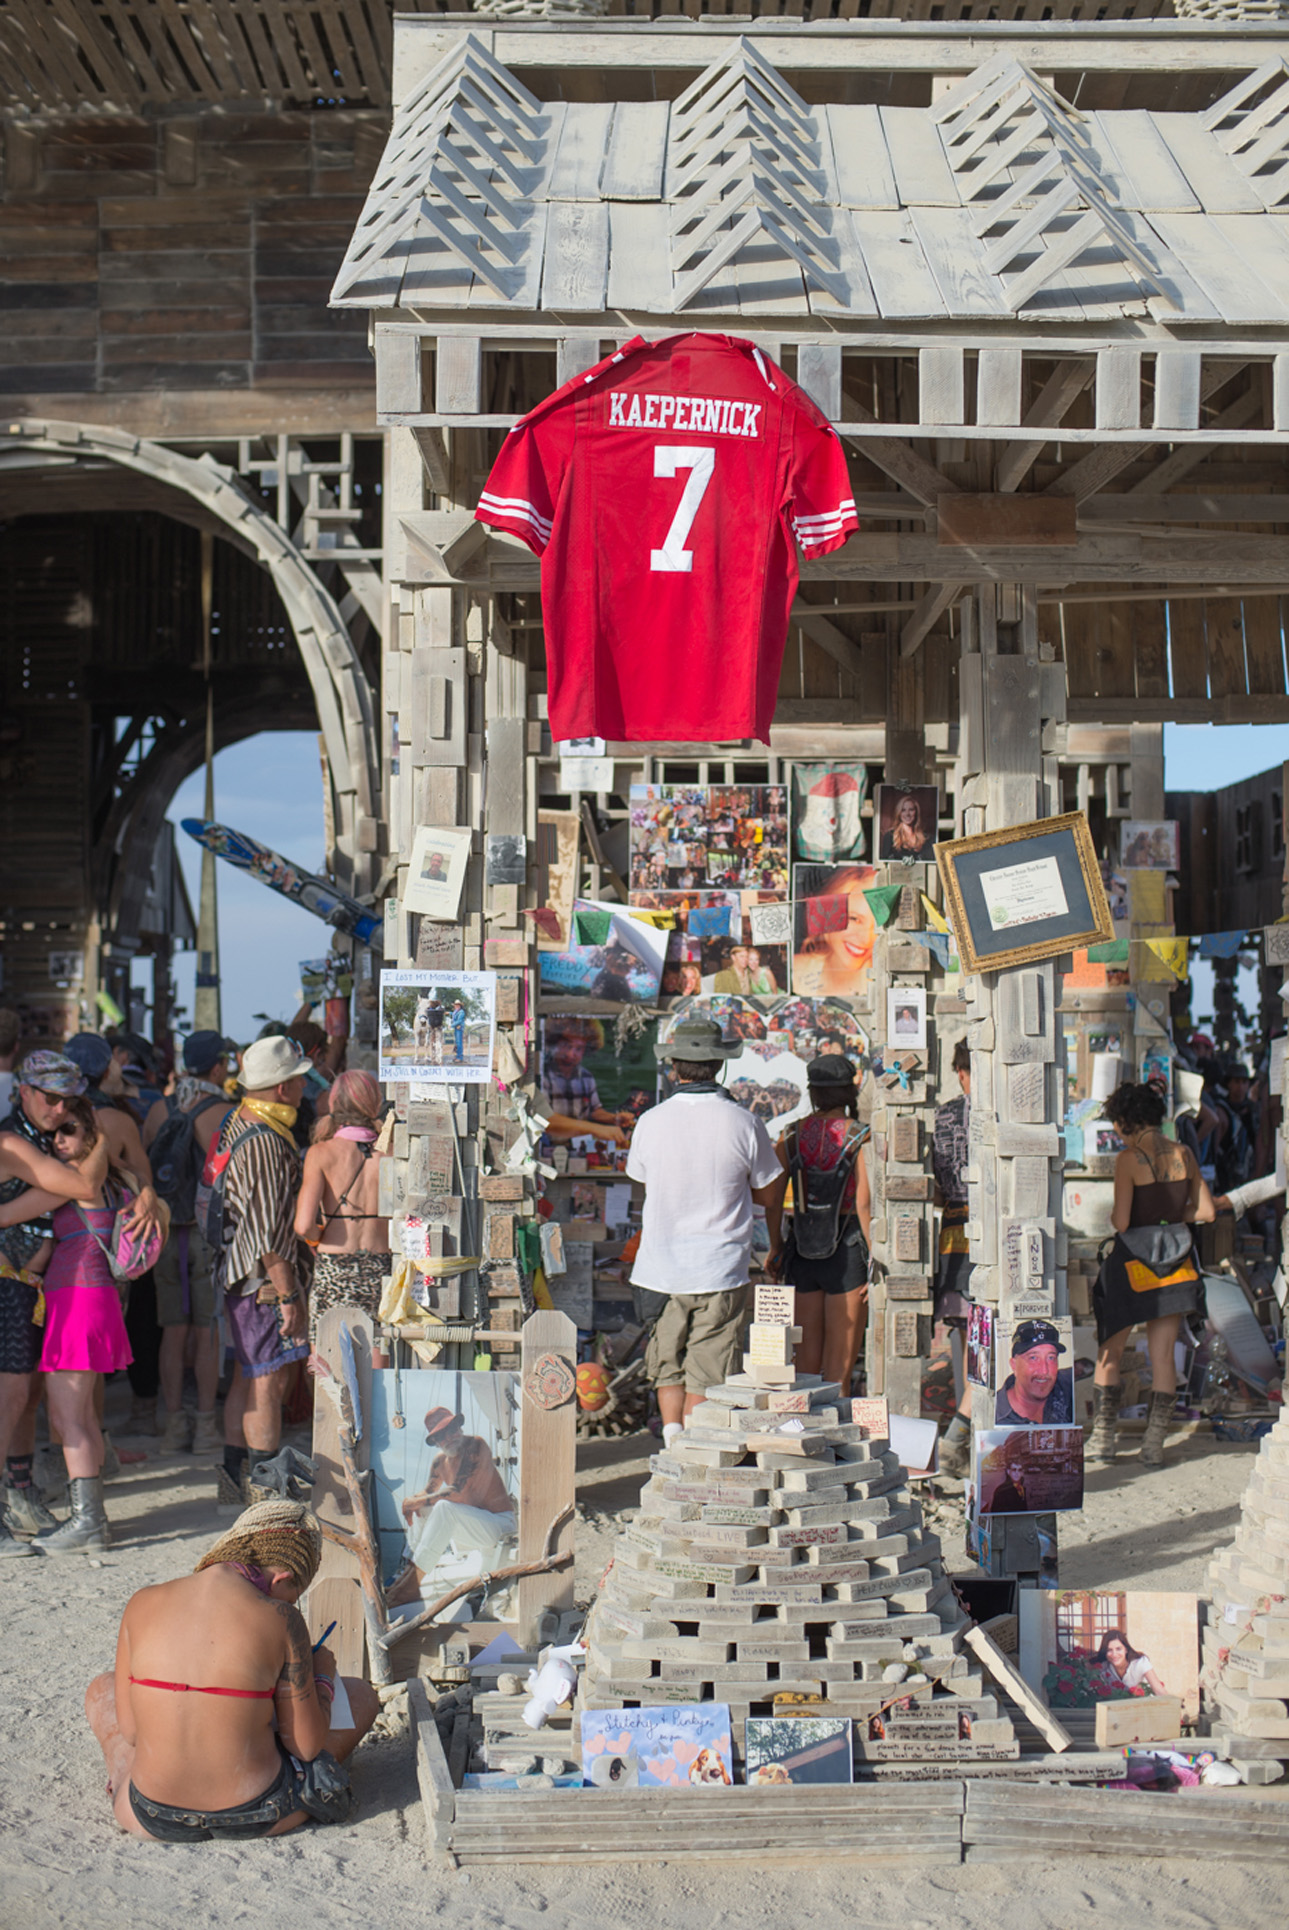 160902_0456_BurningMan2016.jpg